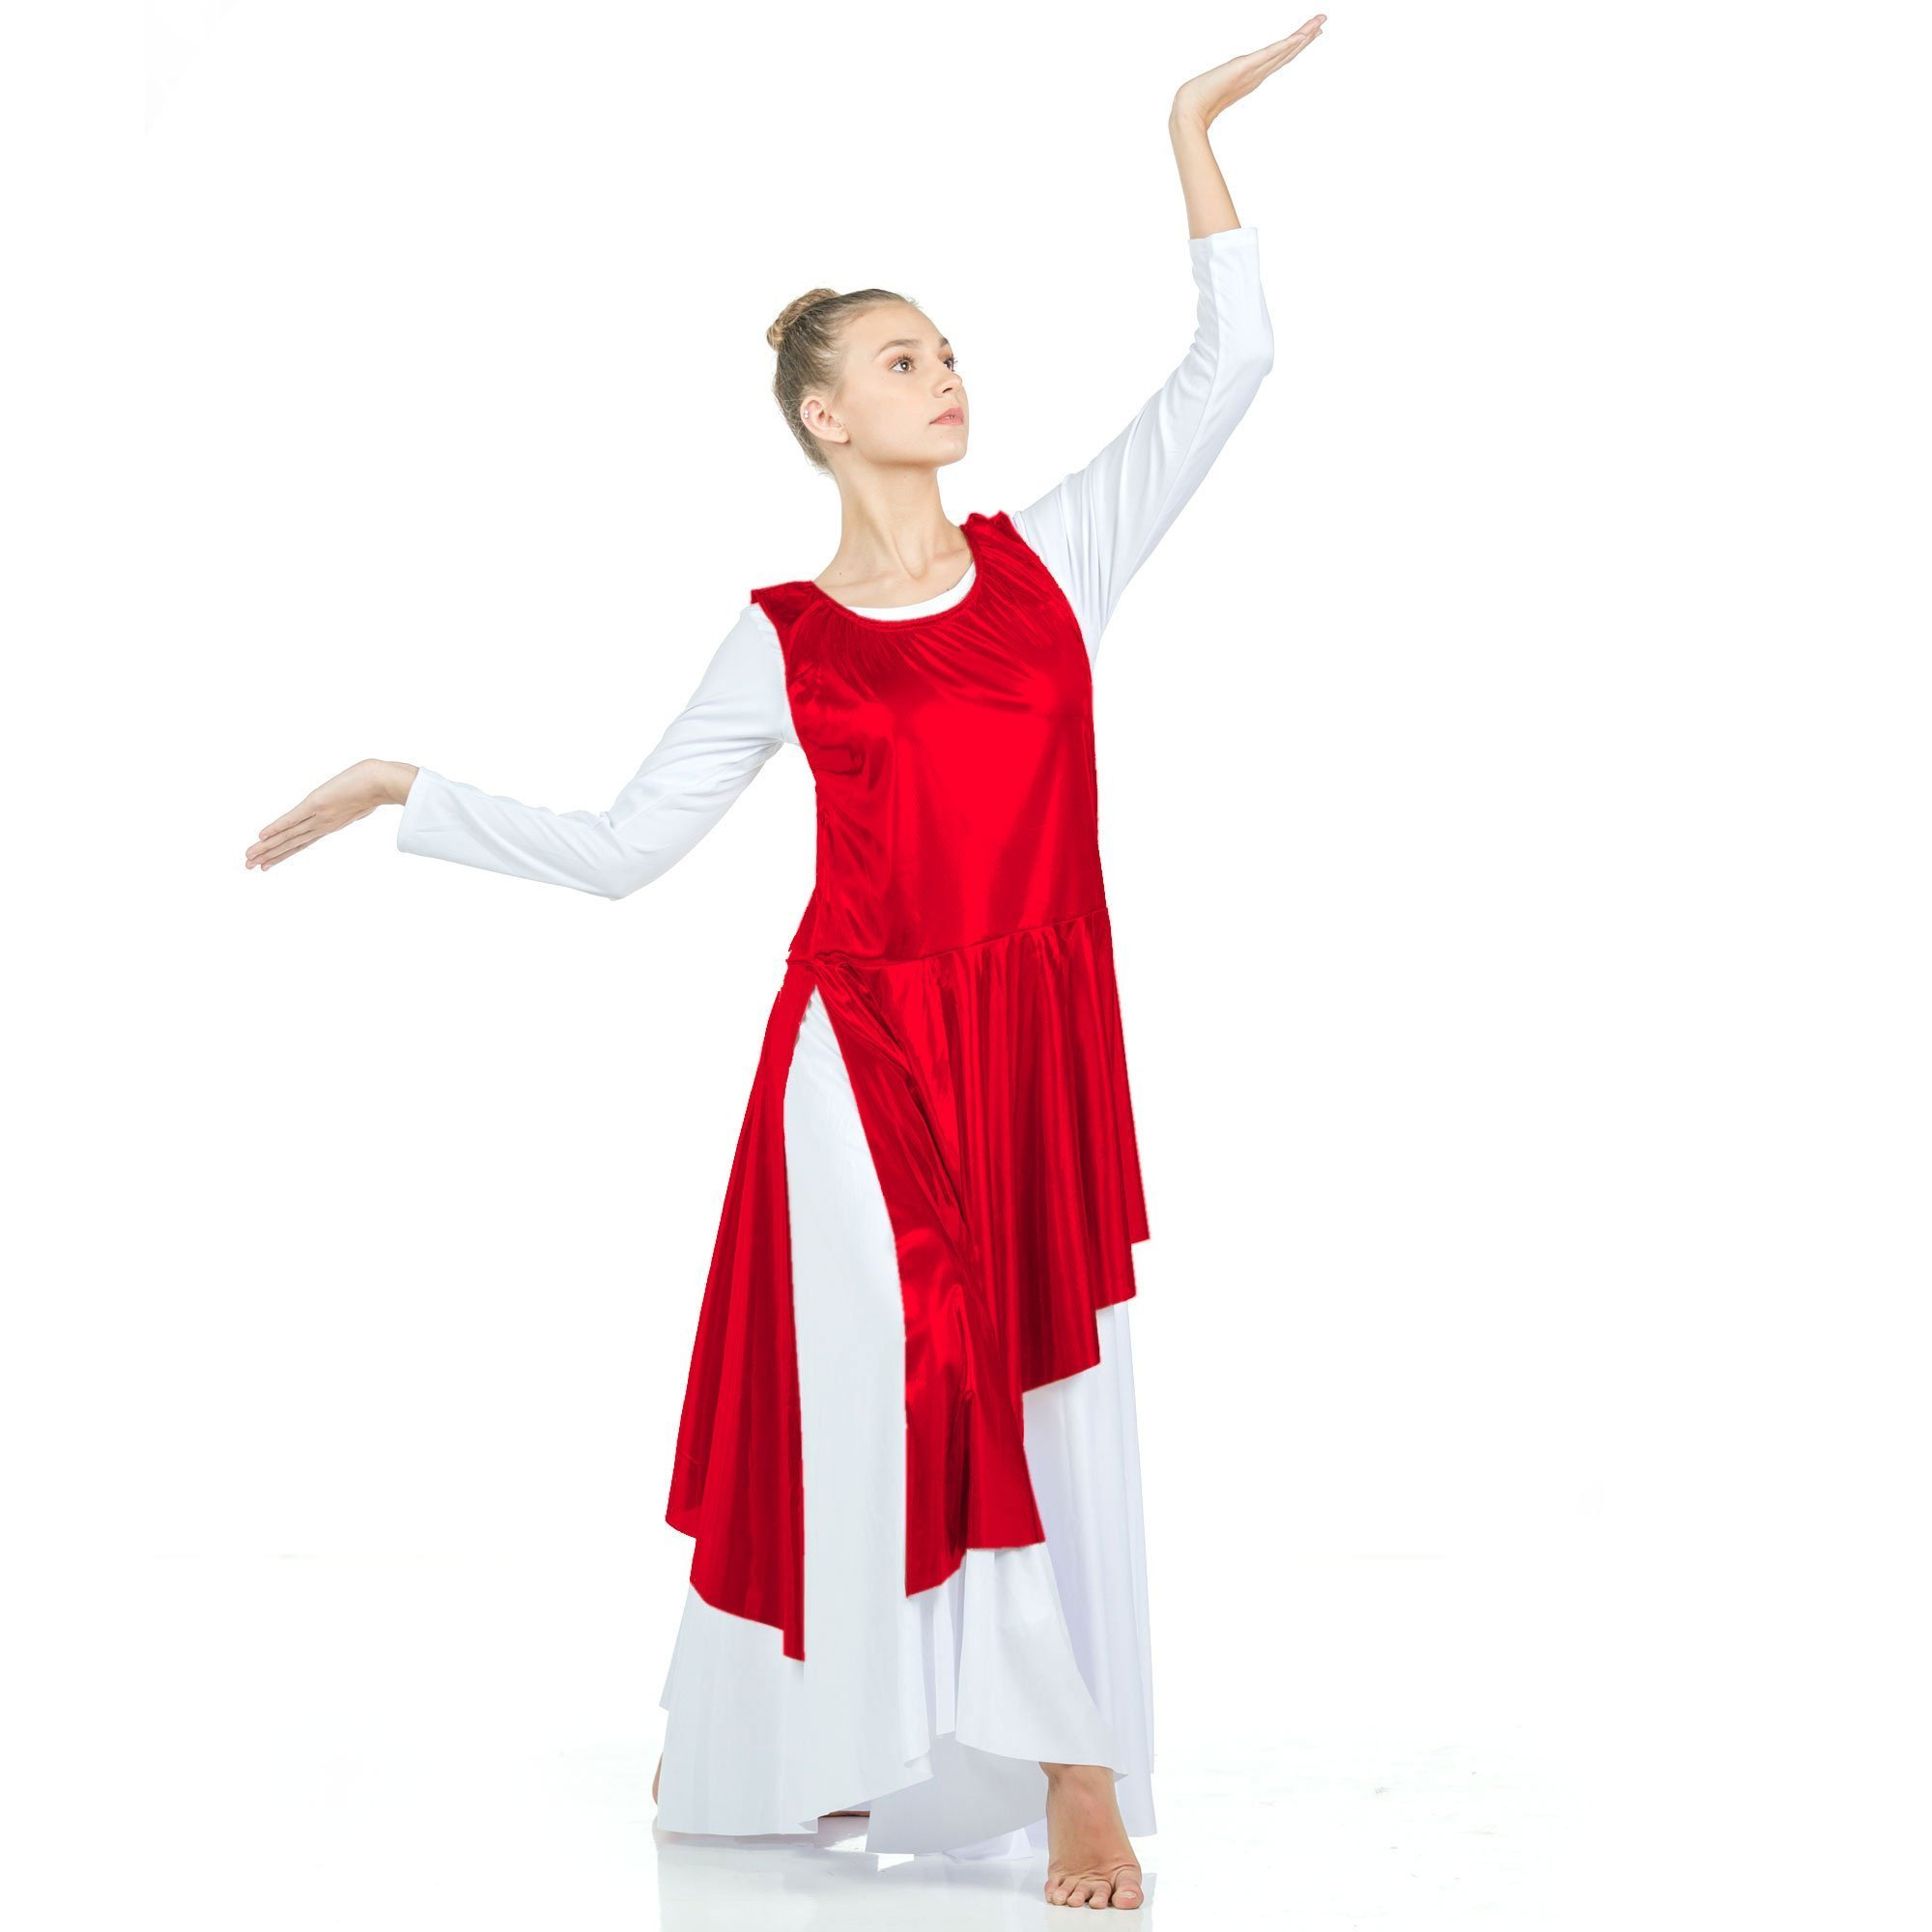 Danzcue Asymmetrical Metallic Praise Dance Tunic